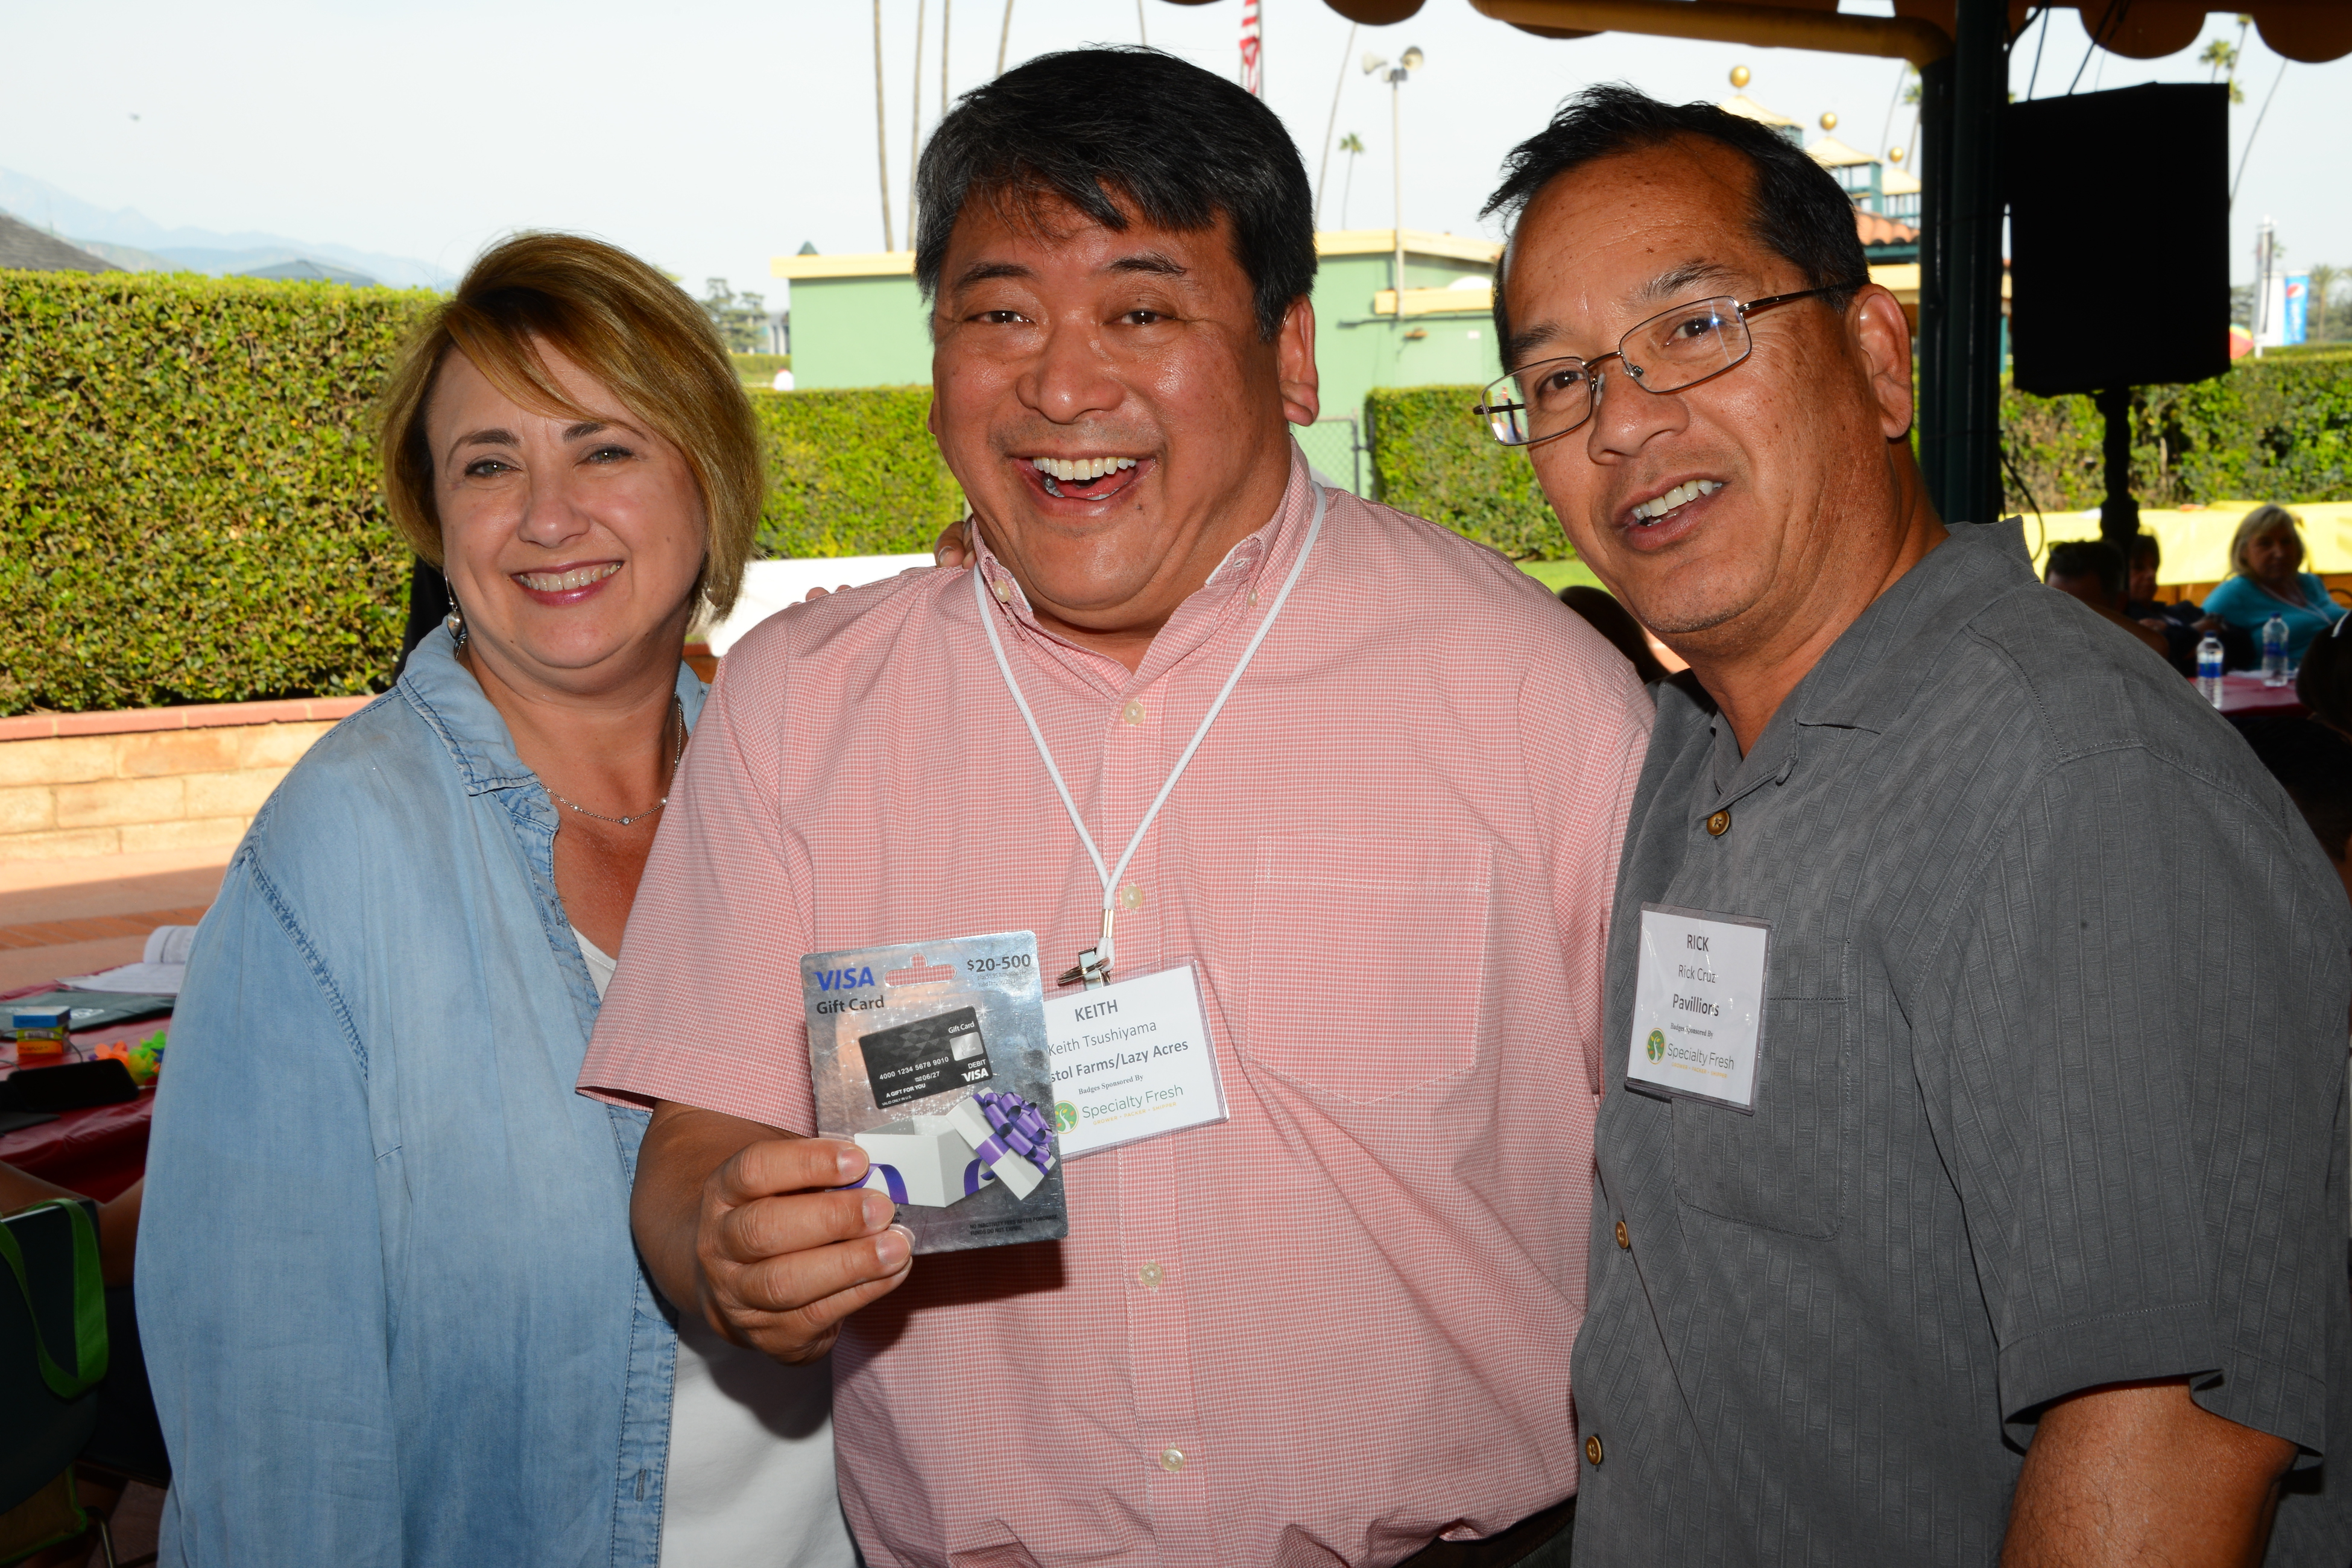 FPFC President Carissa Mace and Races Committee Chairman Rick Cruz of Pavilions with $500 winner Keith Tsushiyama of Bristol Farms